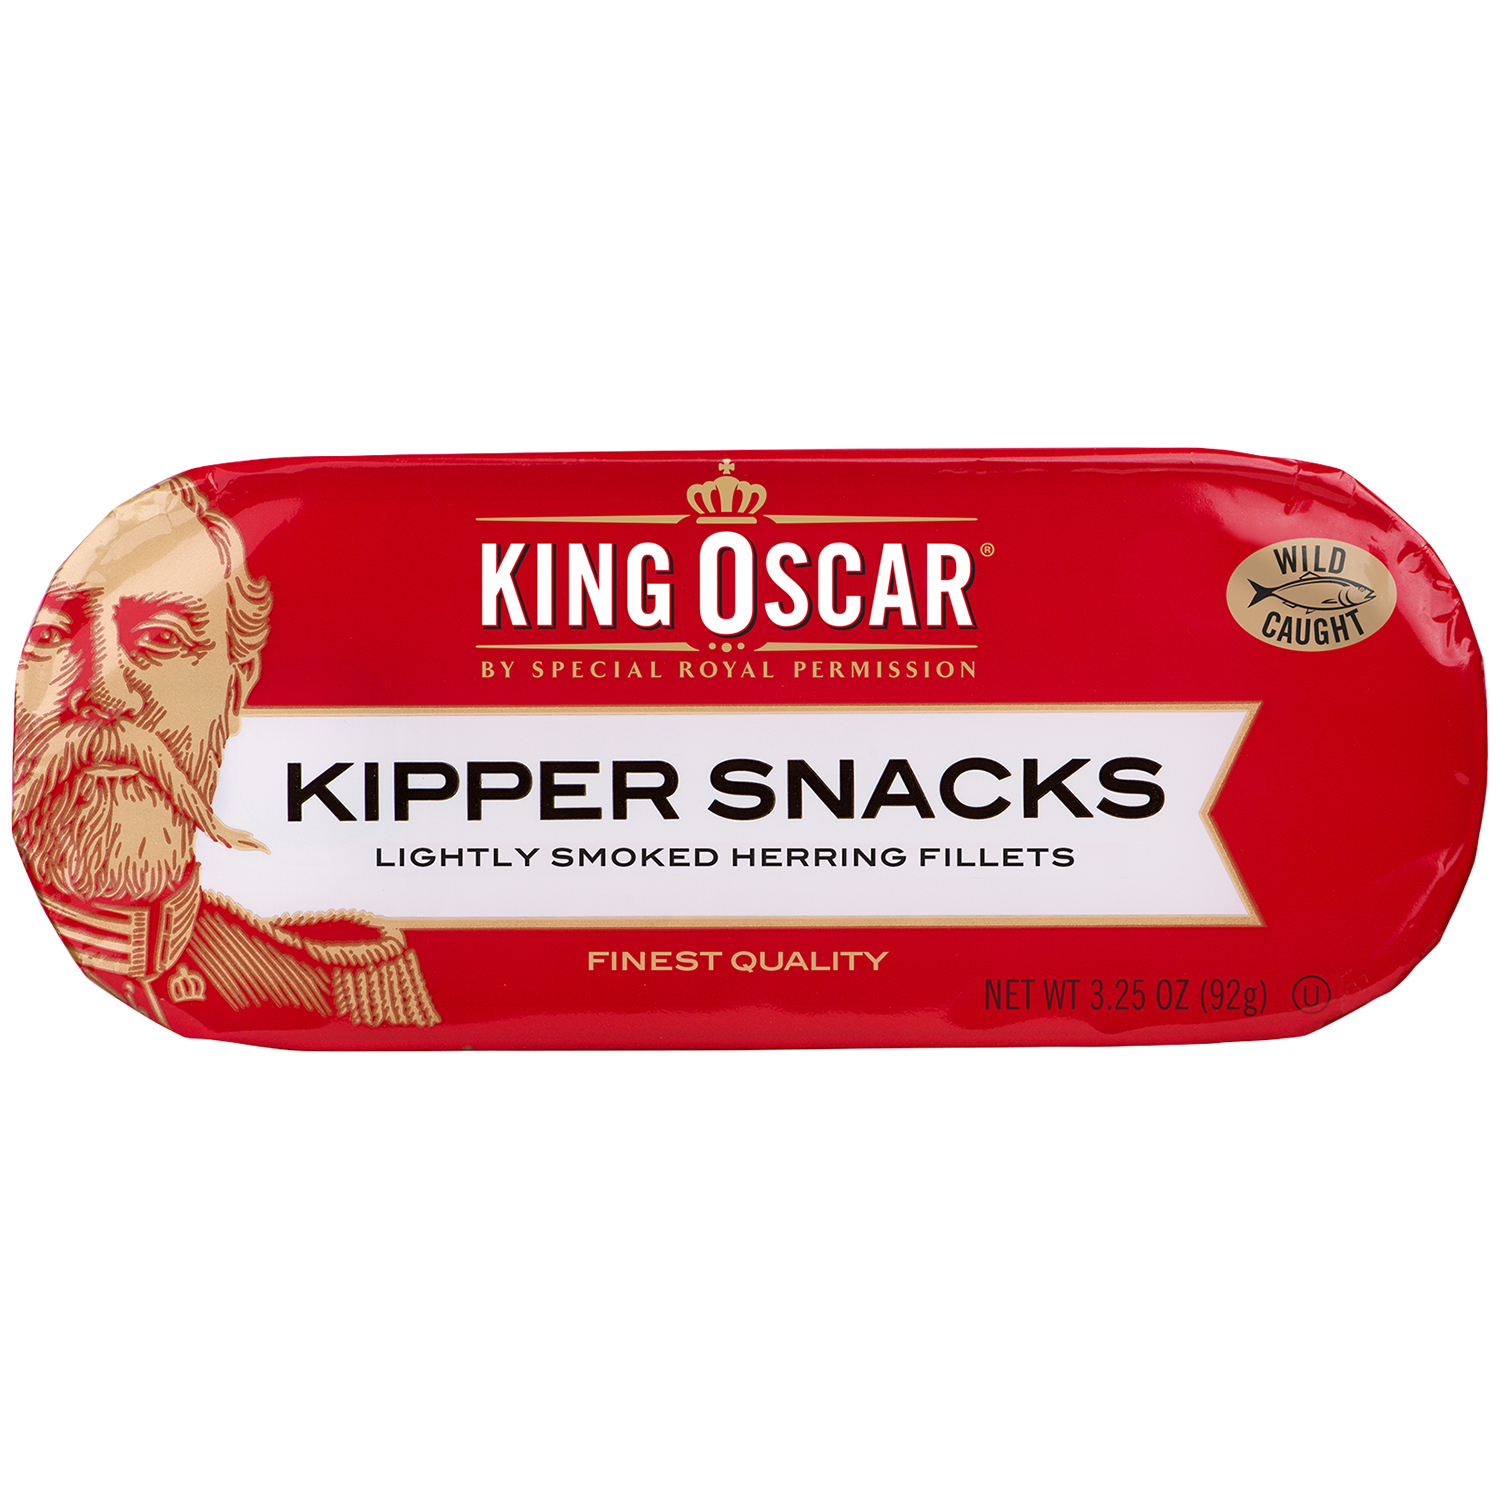 (3 Pack) King Oscar Lightly Smoked Herring Kipper Snacks, 3.25 oz